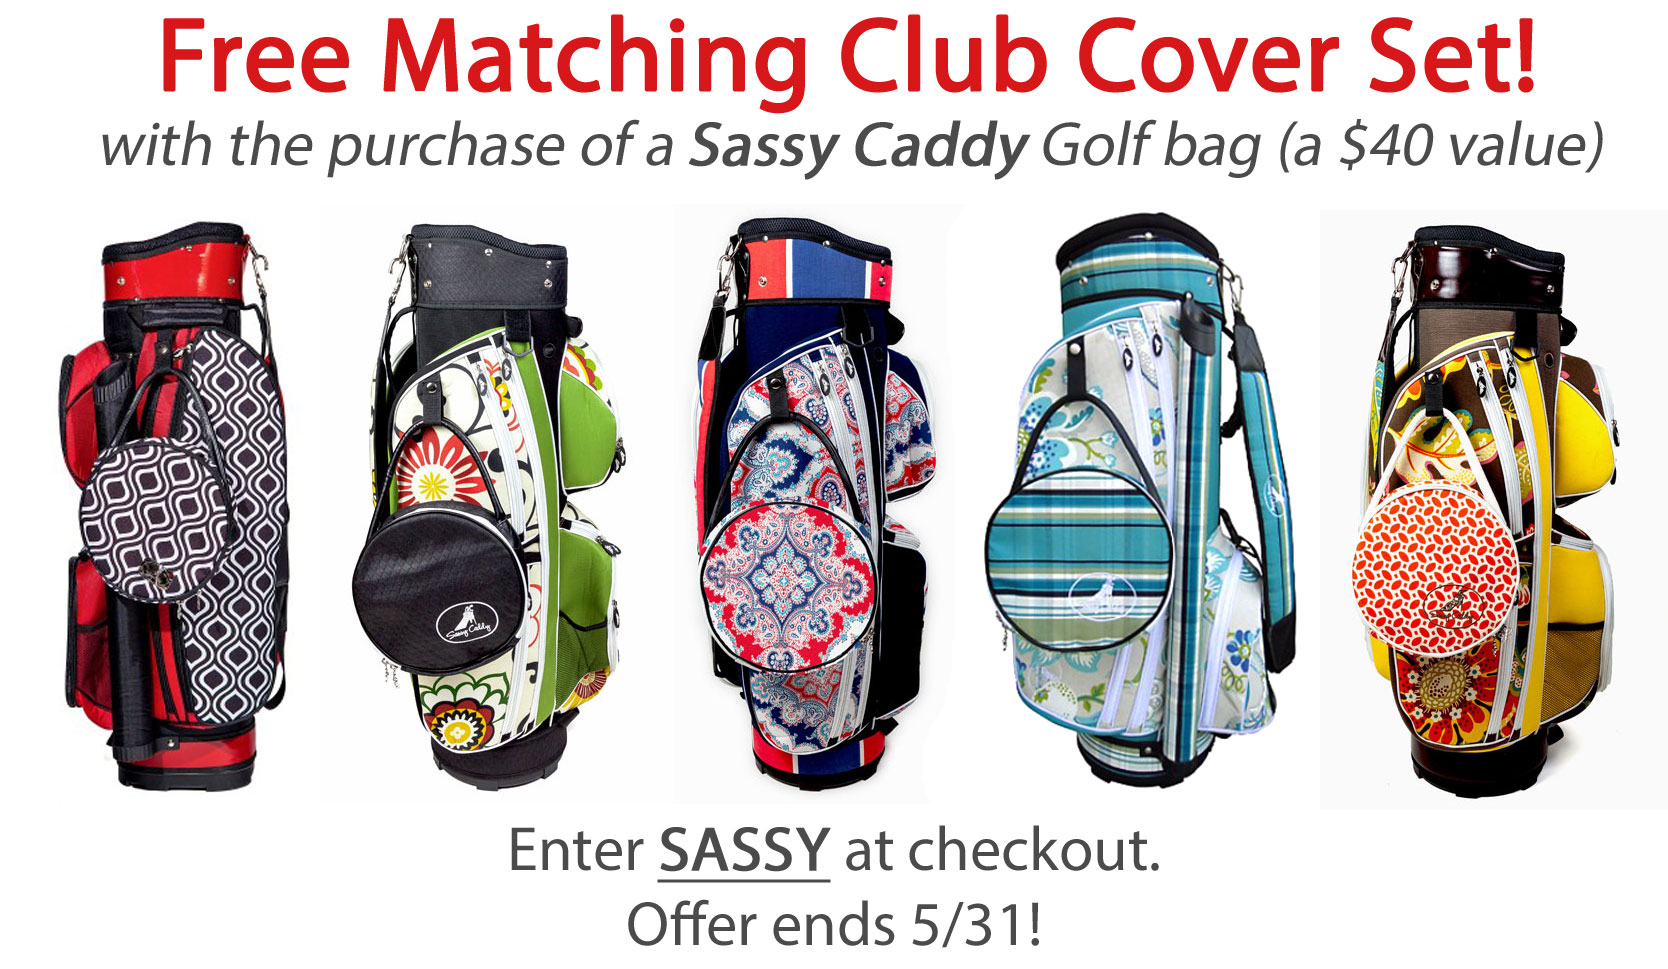 These Designer Golf Bags Are Made In The Usa And Come A Variety Of Colorful Fun Patterns